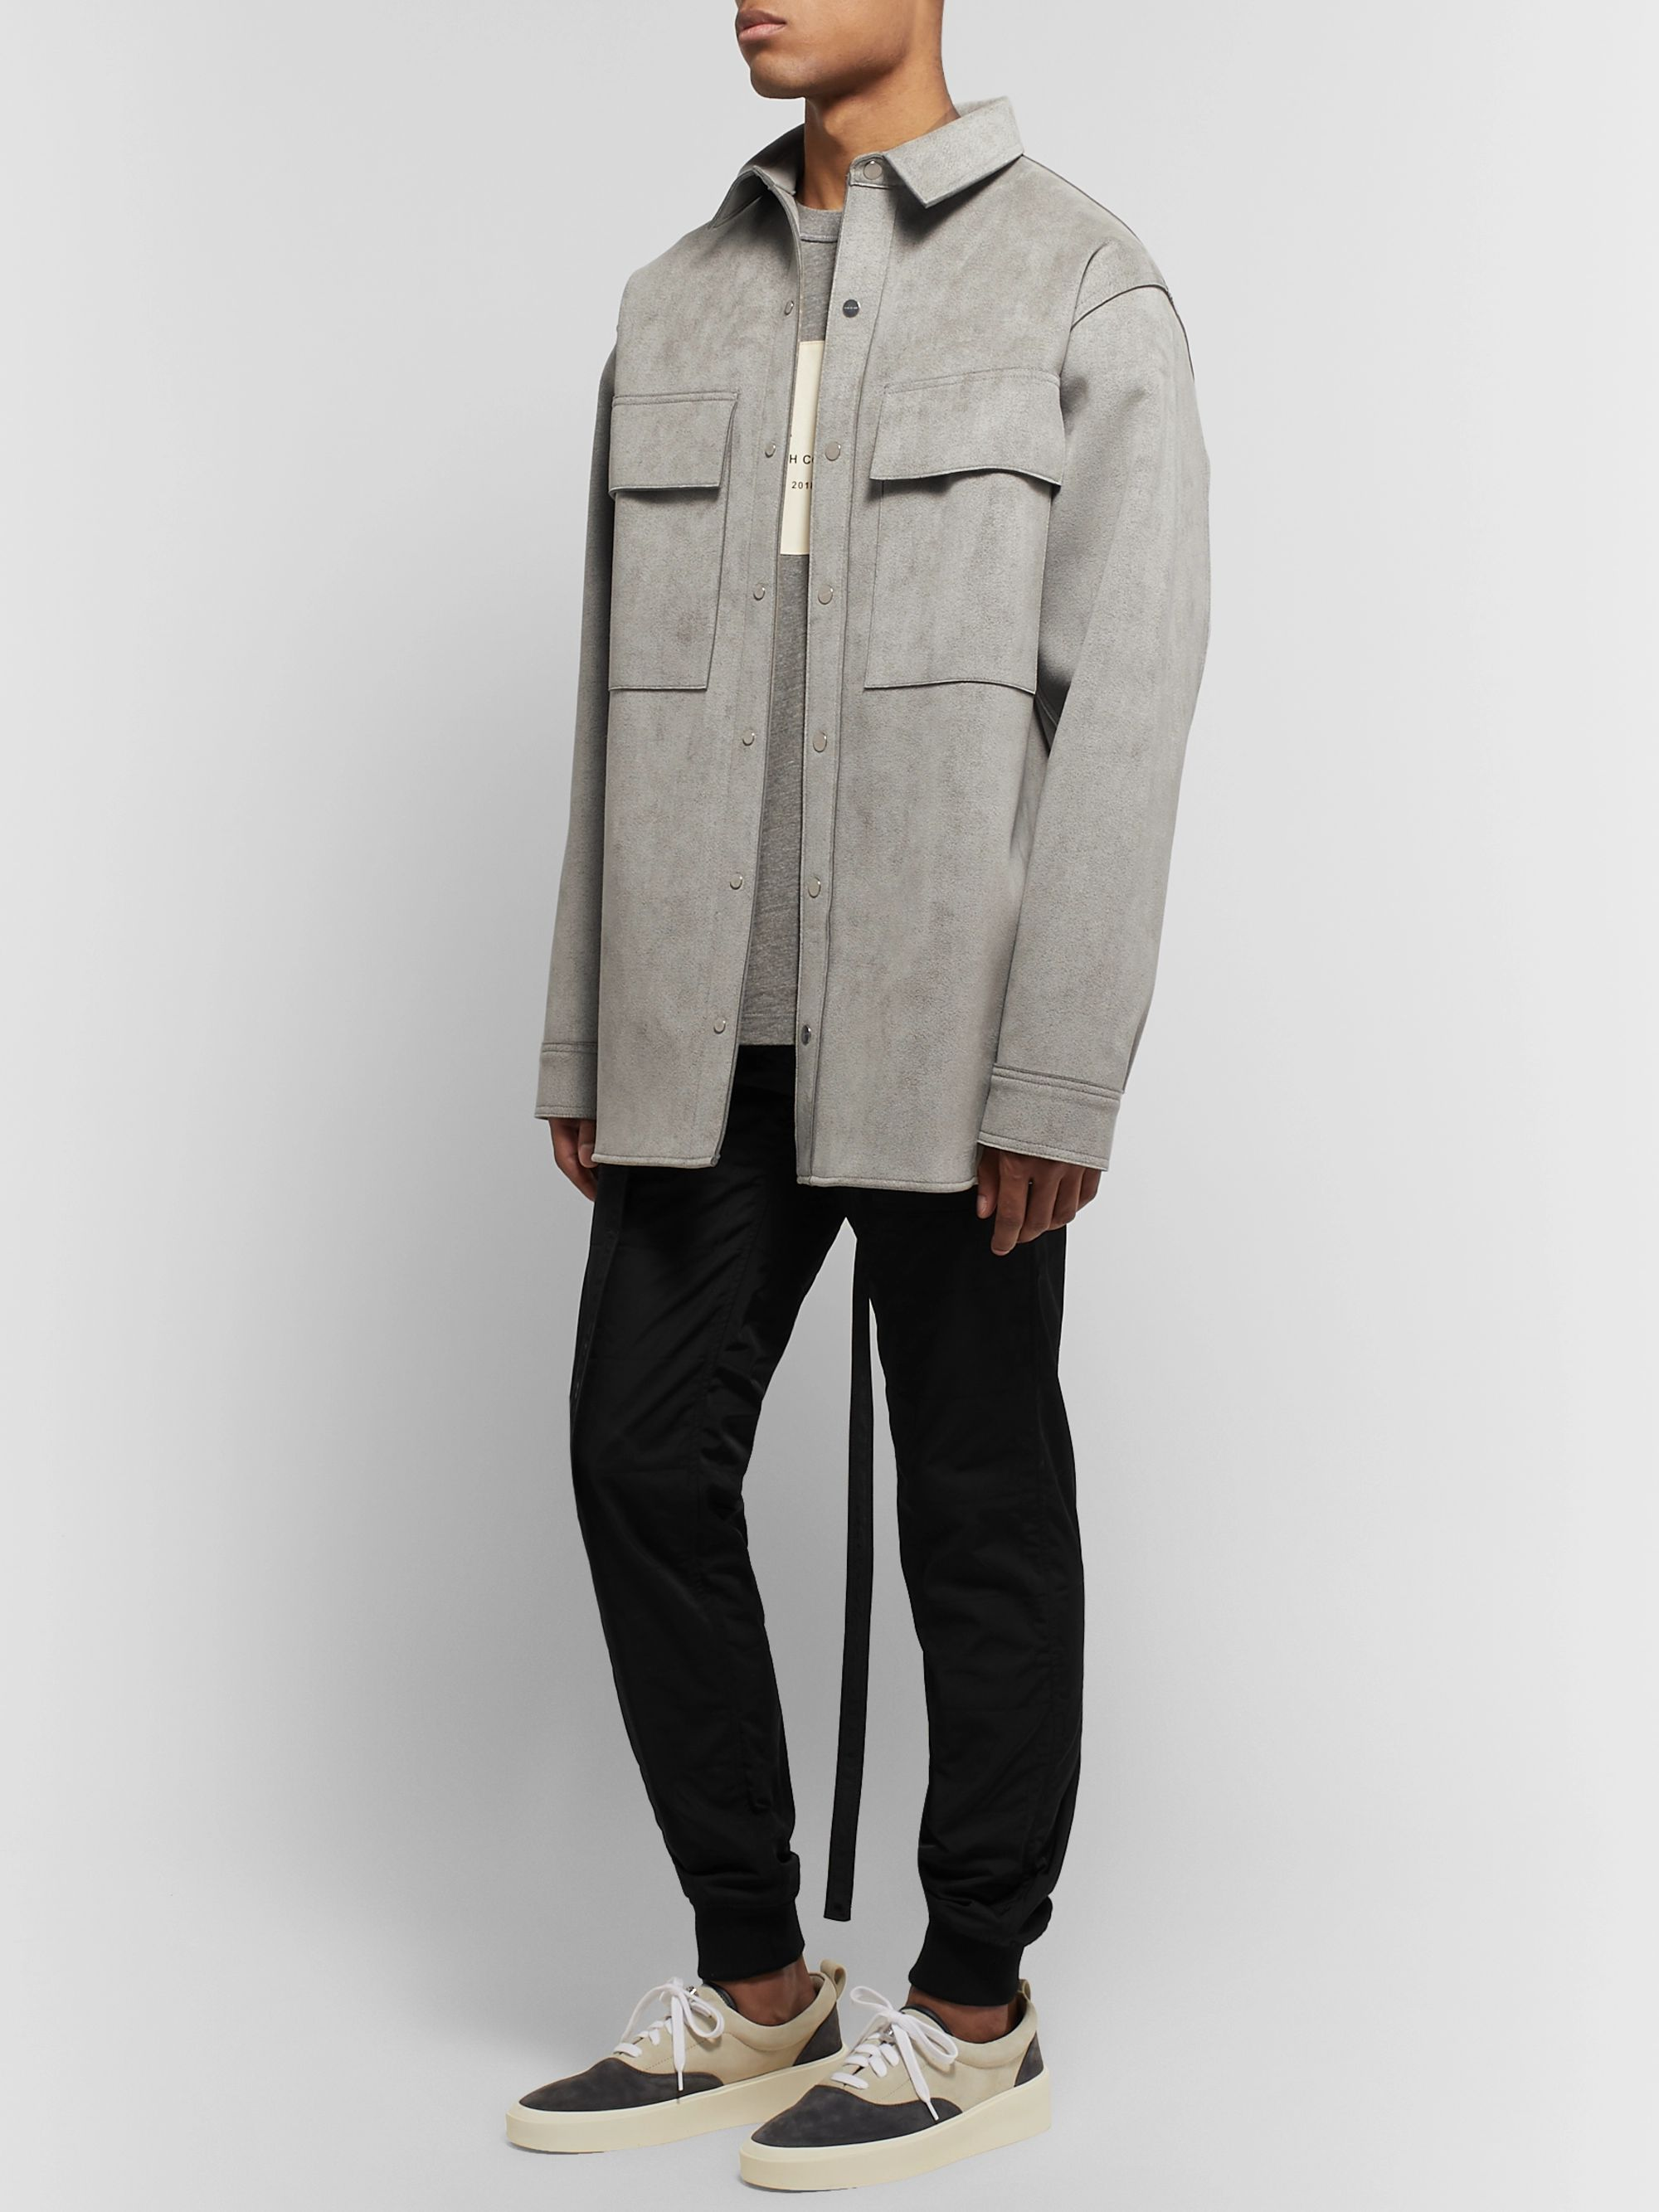 Fear of God Oversized Faux Suede Shirt Jacket